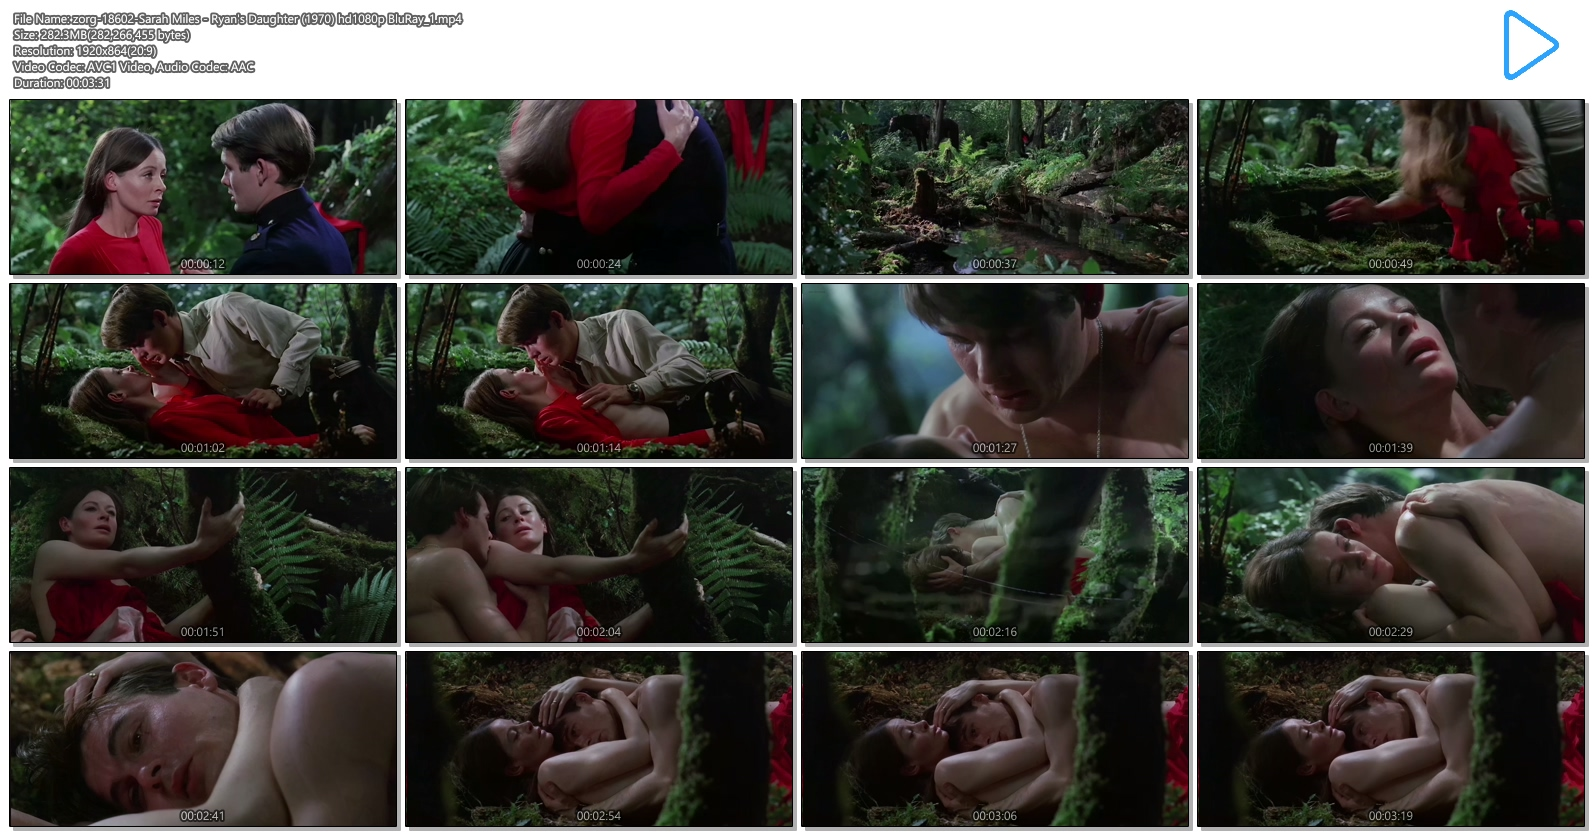 Sarah Miles nude brief topless in one sex scene - Ryan's Daughter (1970) hd1080p BluRay (8)